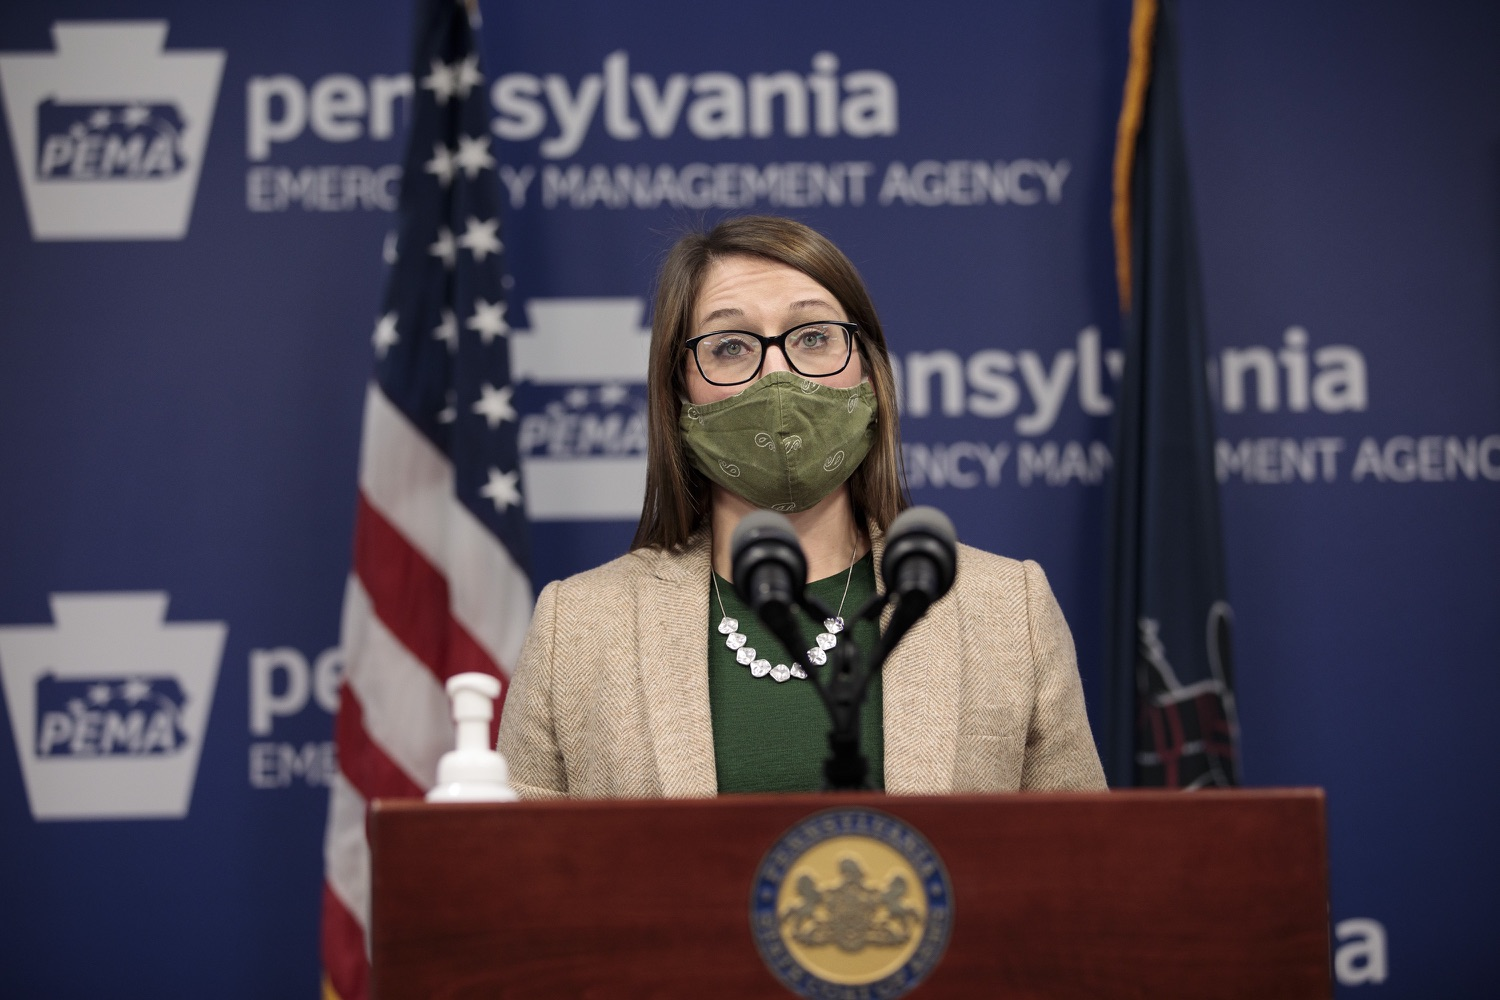 """<a href=""""https://filesource.wostreaming.net/commonwealthofpa/photo/18524_doh_vaccine_dz_02.JPG"""" target=""""_blank"""">⇣Download Photo<br></a>Department of Health Senior Advisor Lindsey Mauldin speaking at the press conference.  The Pennsylvania Department of Health today launched a new tool called Your Turn to help Pennsylvanians understand where they fall in the vaccine prioritization effort and to be alerted when it is their turn to schedule an appointment for the COVID-19 vaccine.  Harrisburg, PA  February 9, 2021"""